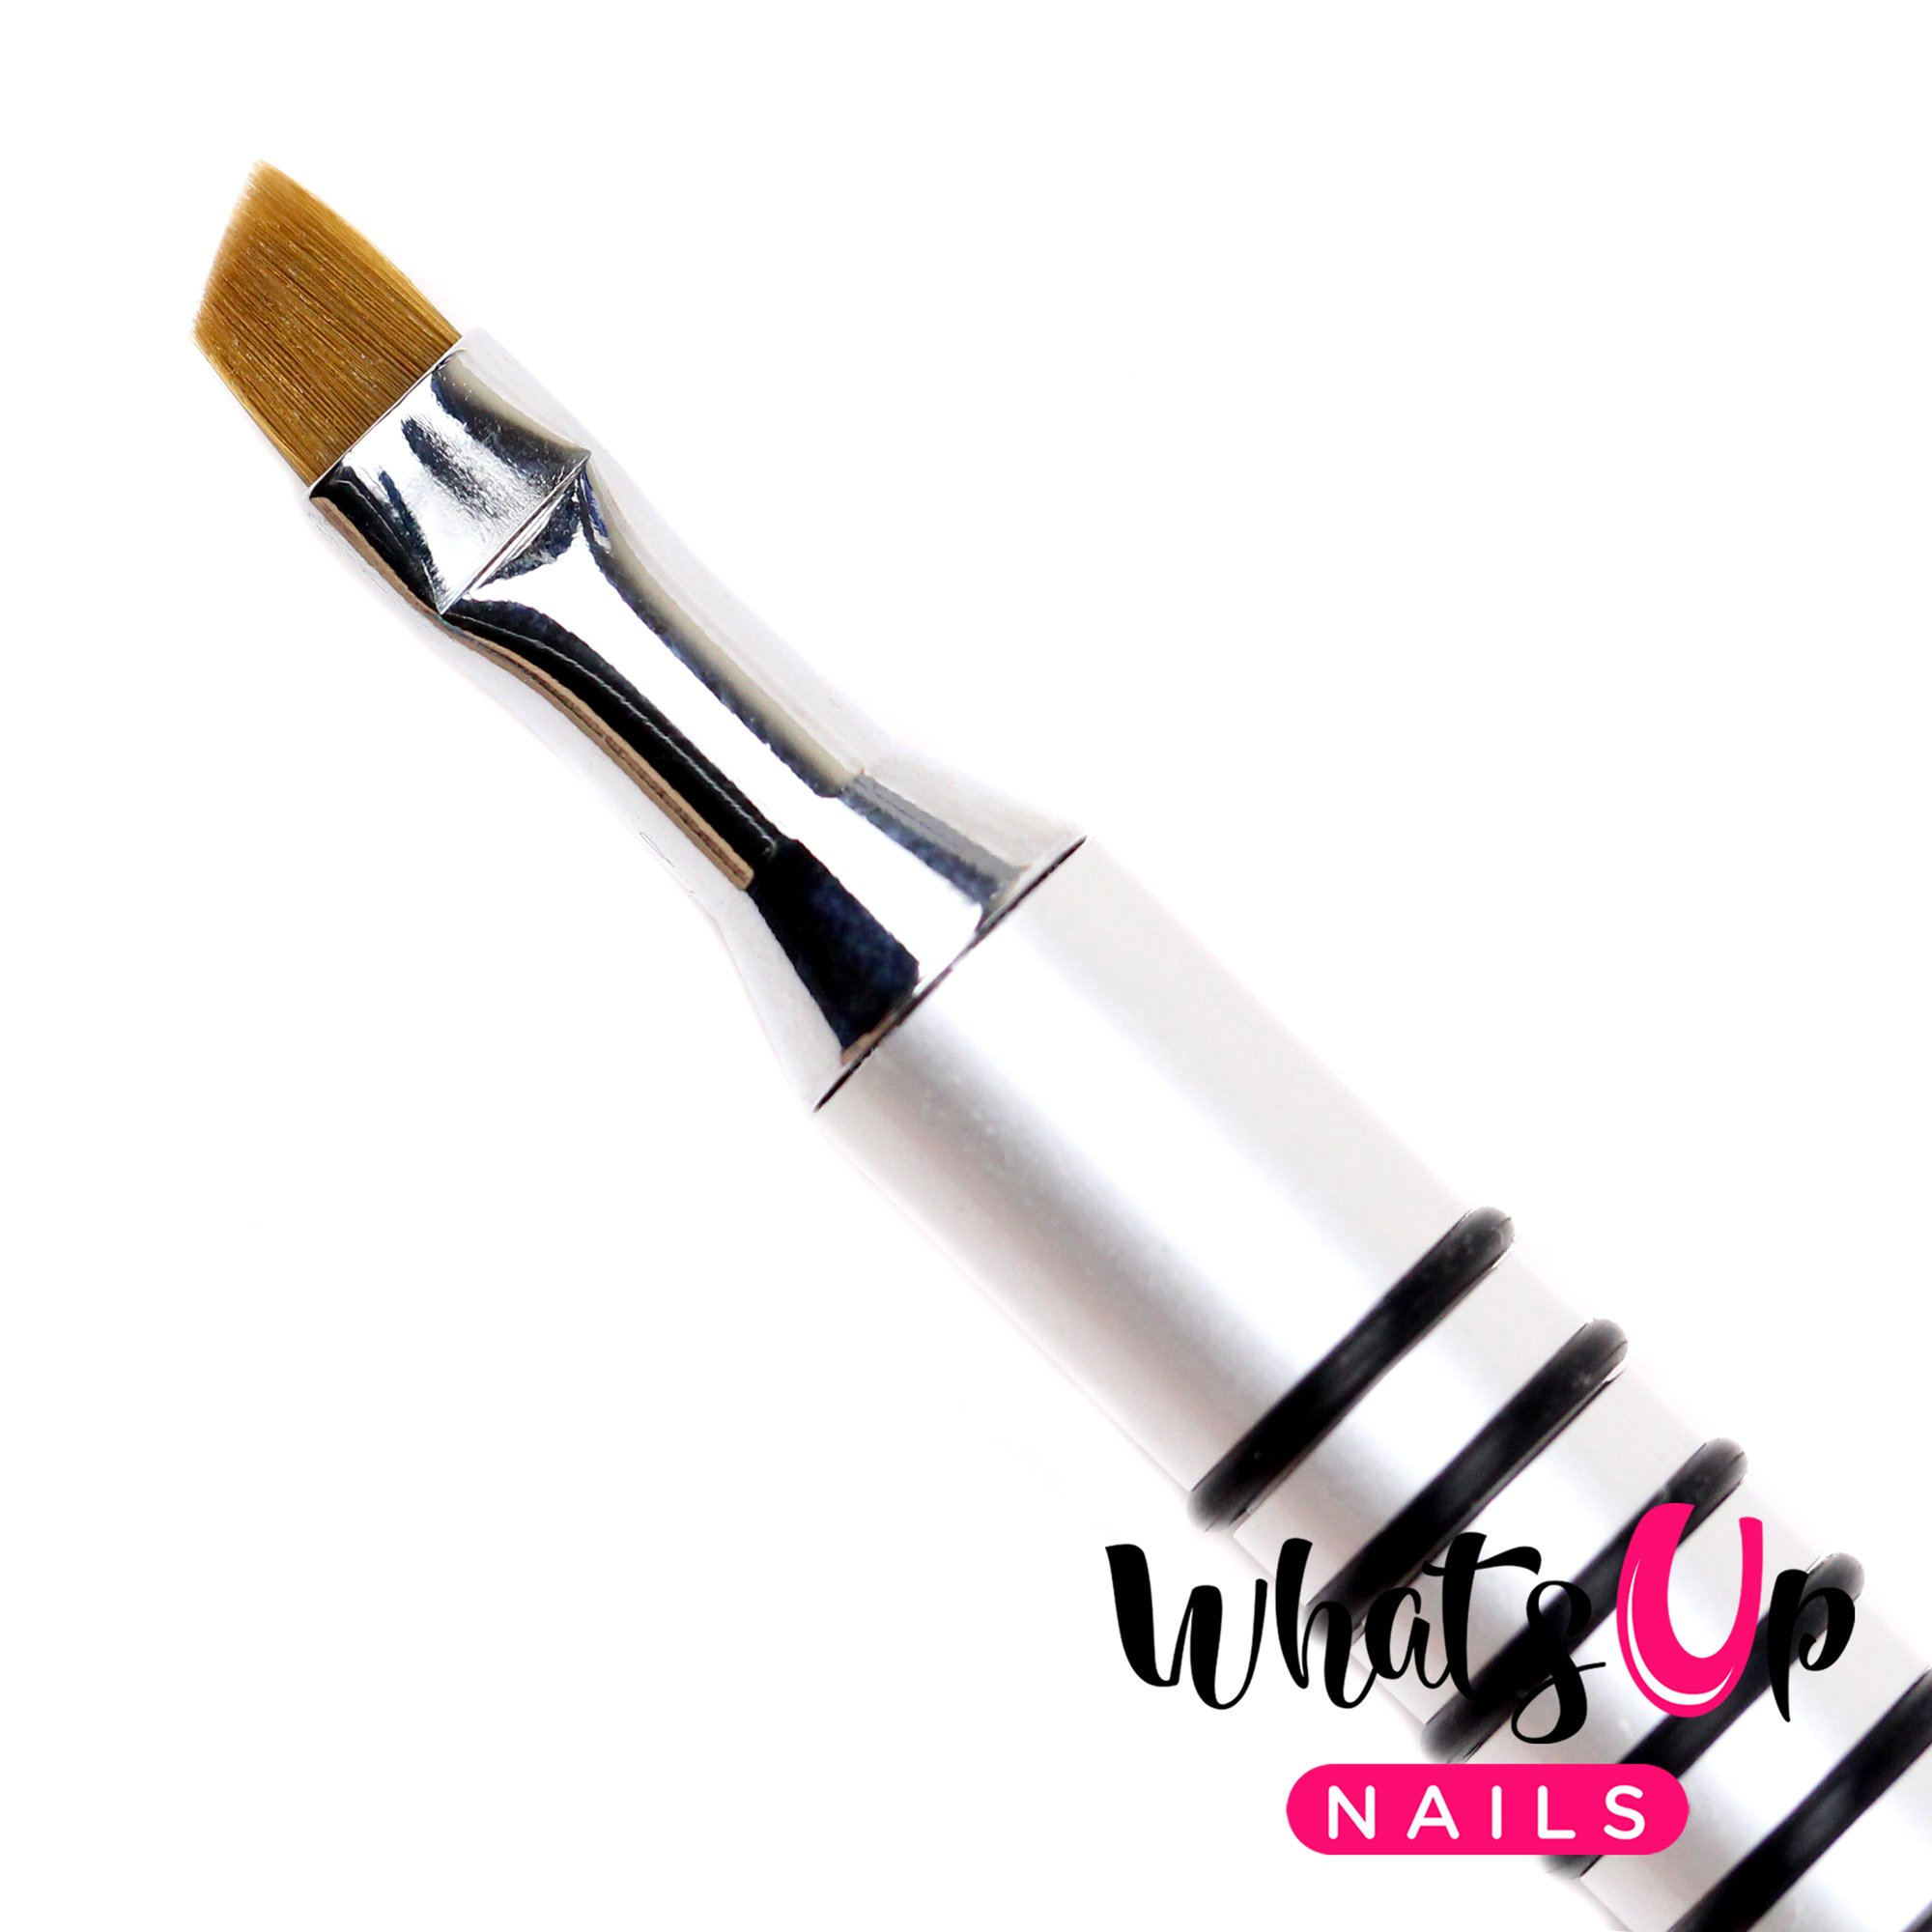 Whats Up Nails - Pure Color #4 Angular Brush for Clean Up